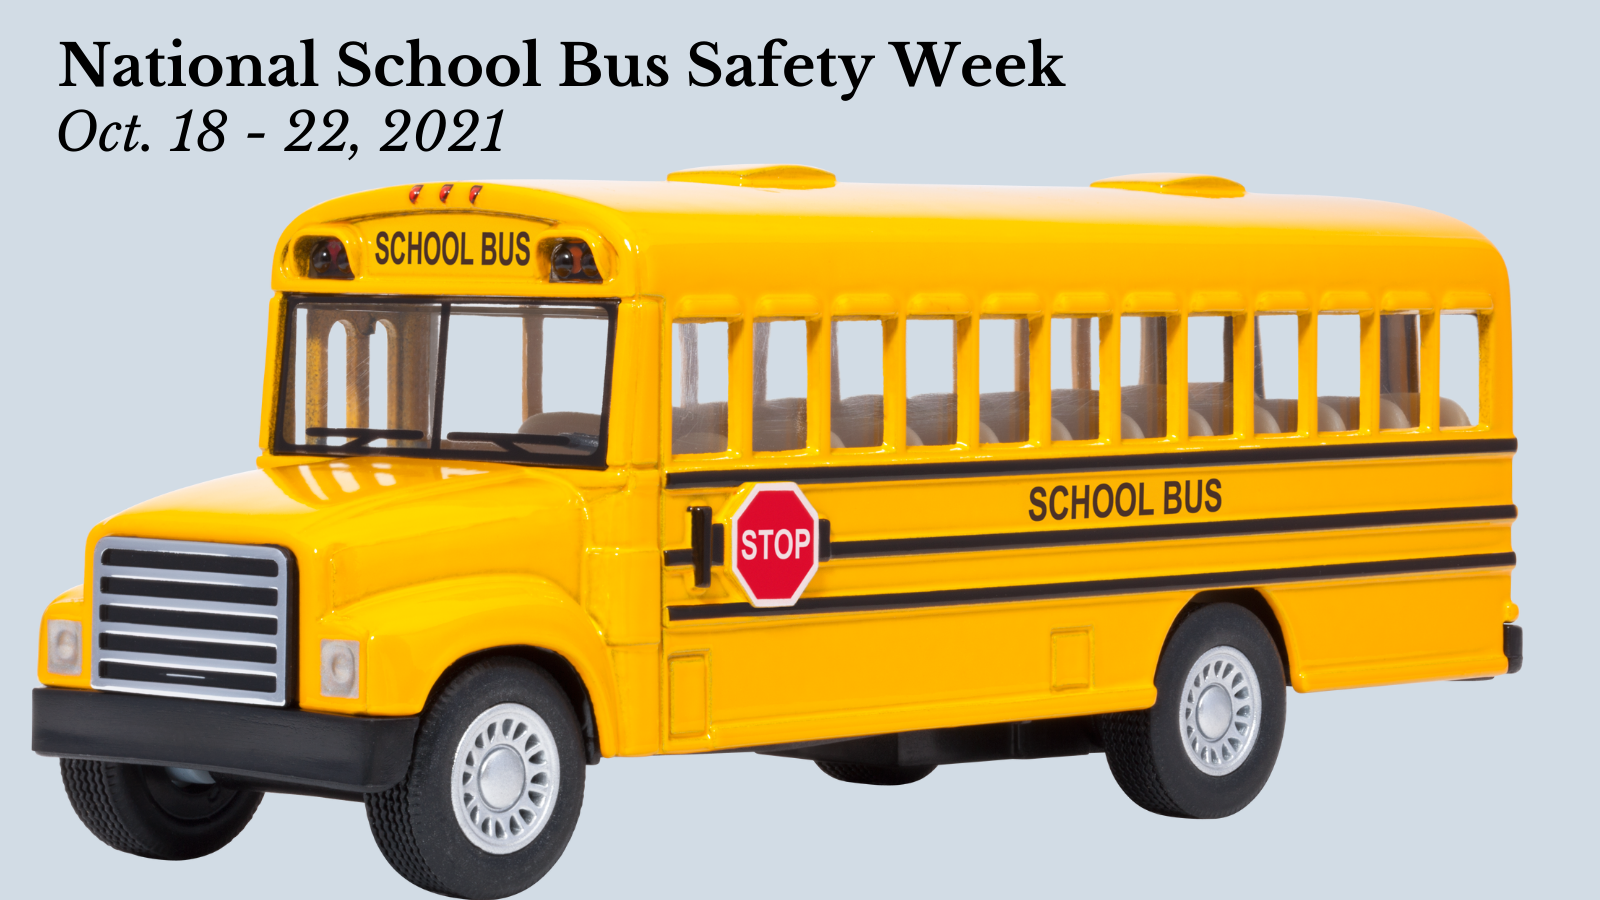 National School Bus Safety Week - Oct. 18 - 22, 2021